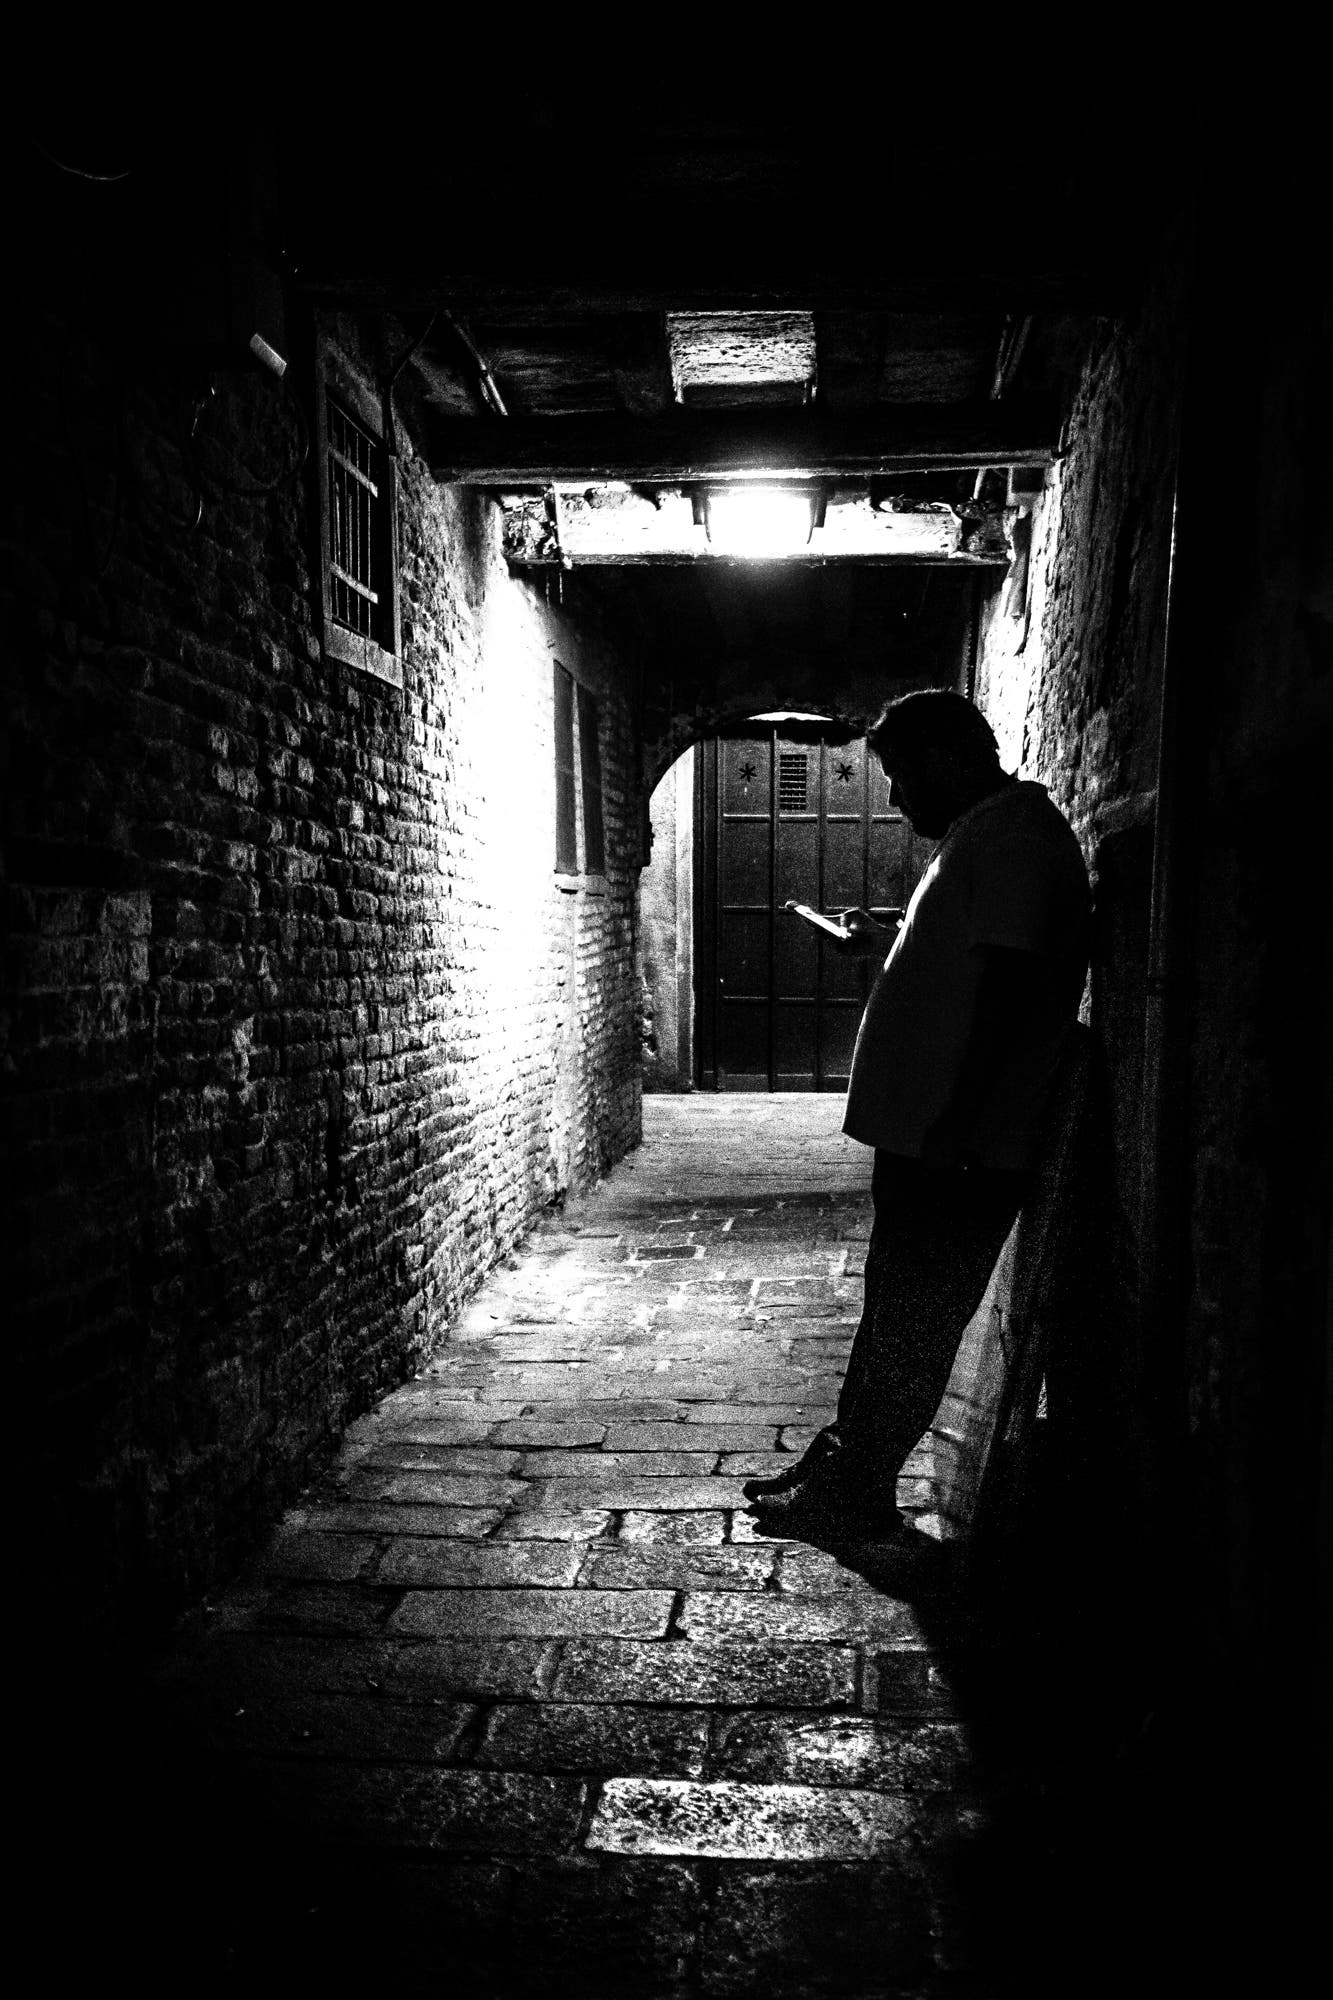 Texting - Venice, Italy - Black and white street photography